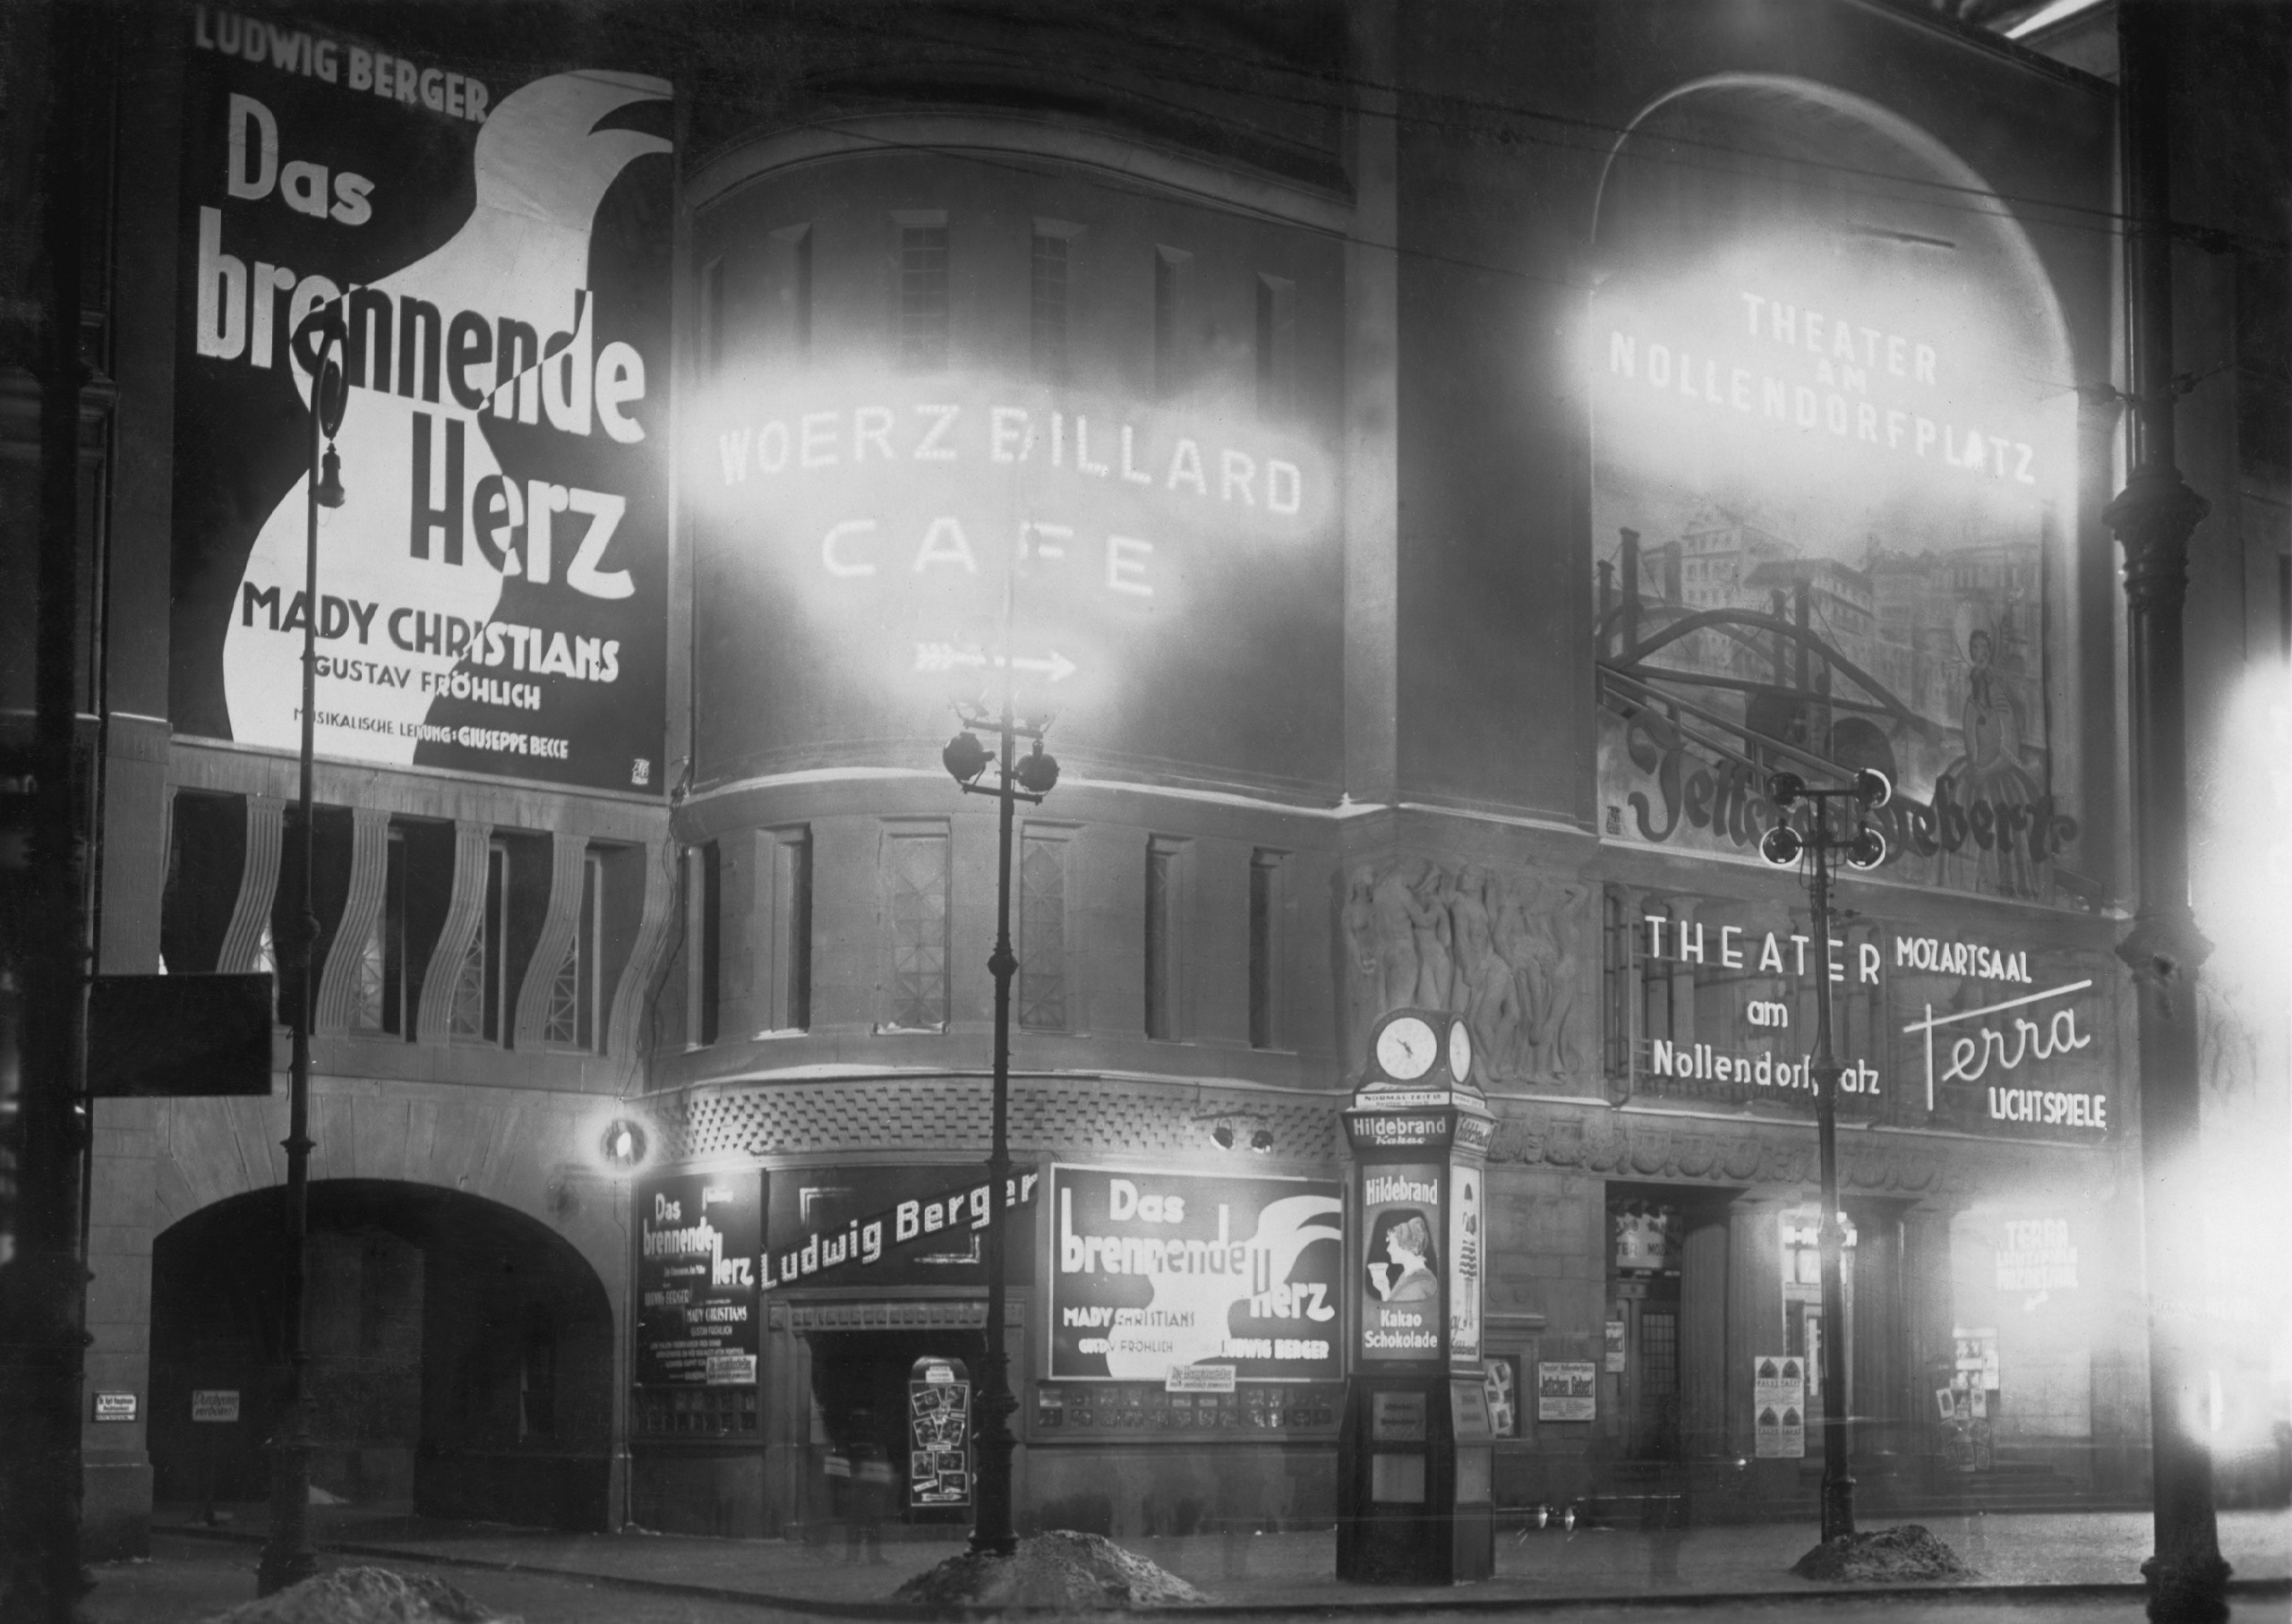 Black and white photo: the front of the cinema with illuminated advertising and film posters for Das brennende Herz